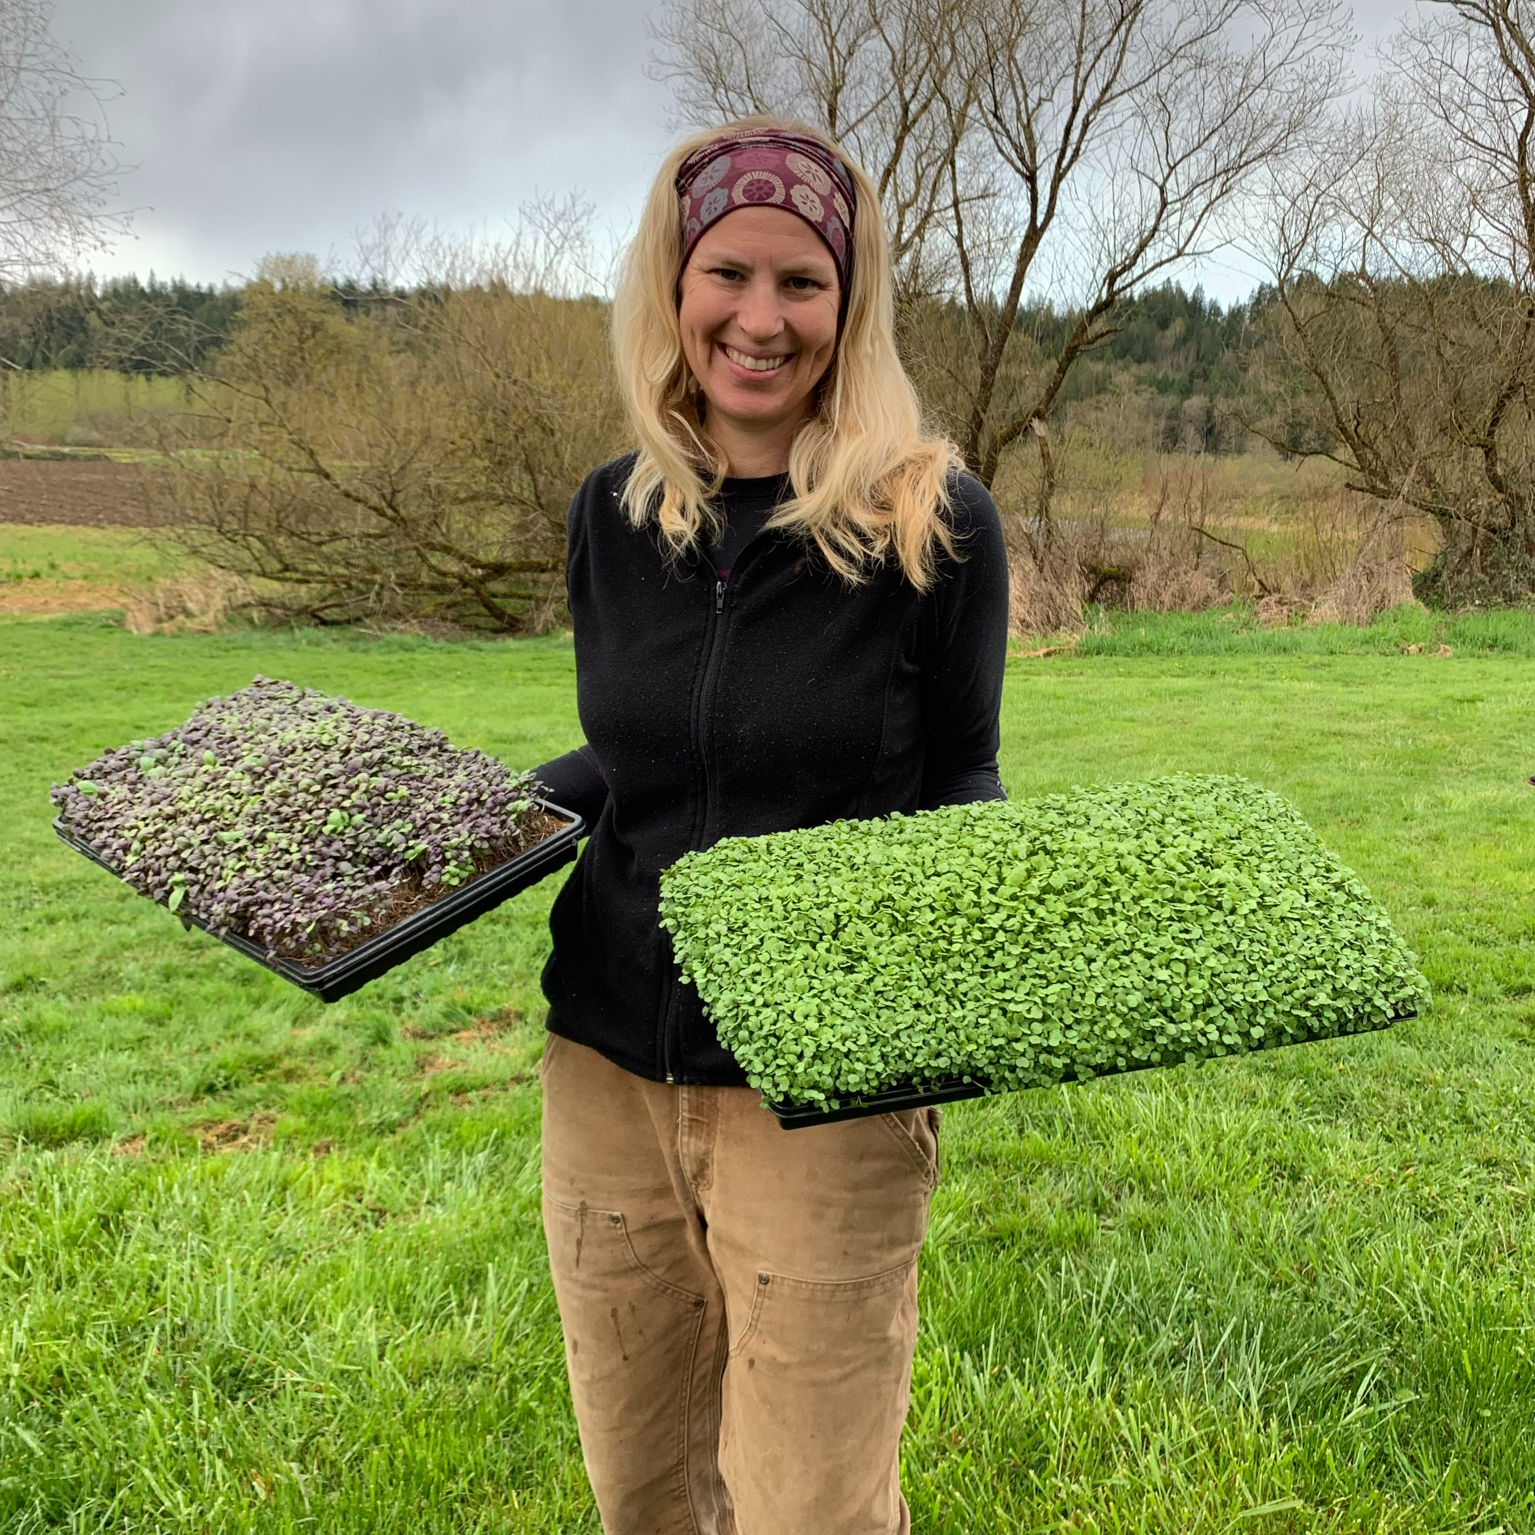 Laura from Hand Grown Greens